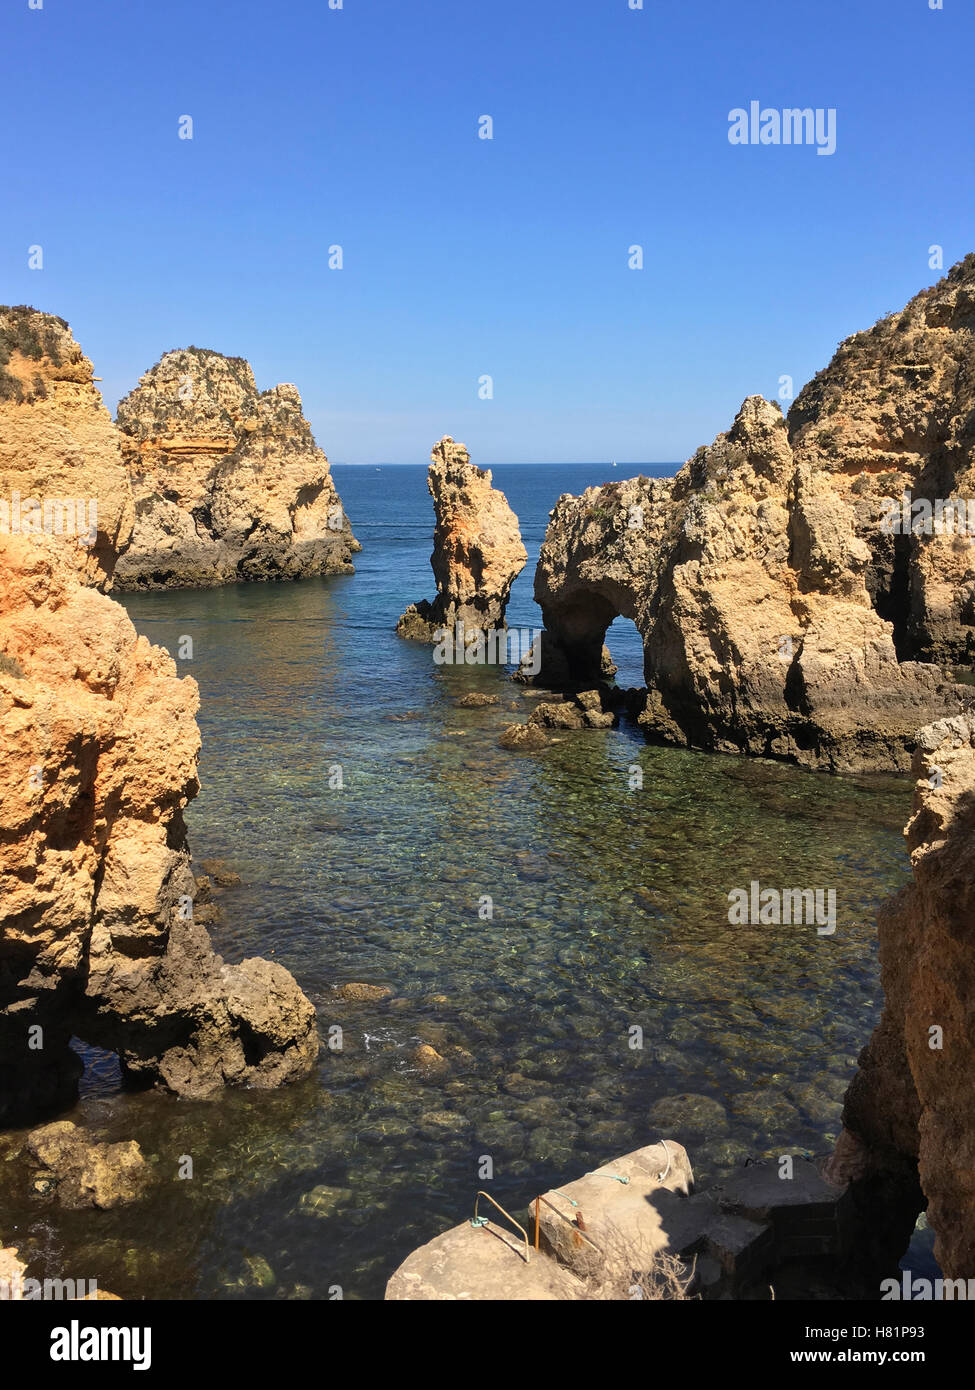 Old rocky outcroppings surrounded by low tide with calm ocean in background. Includes space for boat or copy. - Stock Image